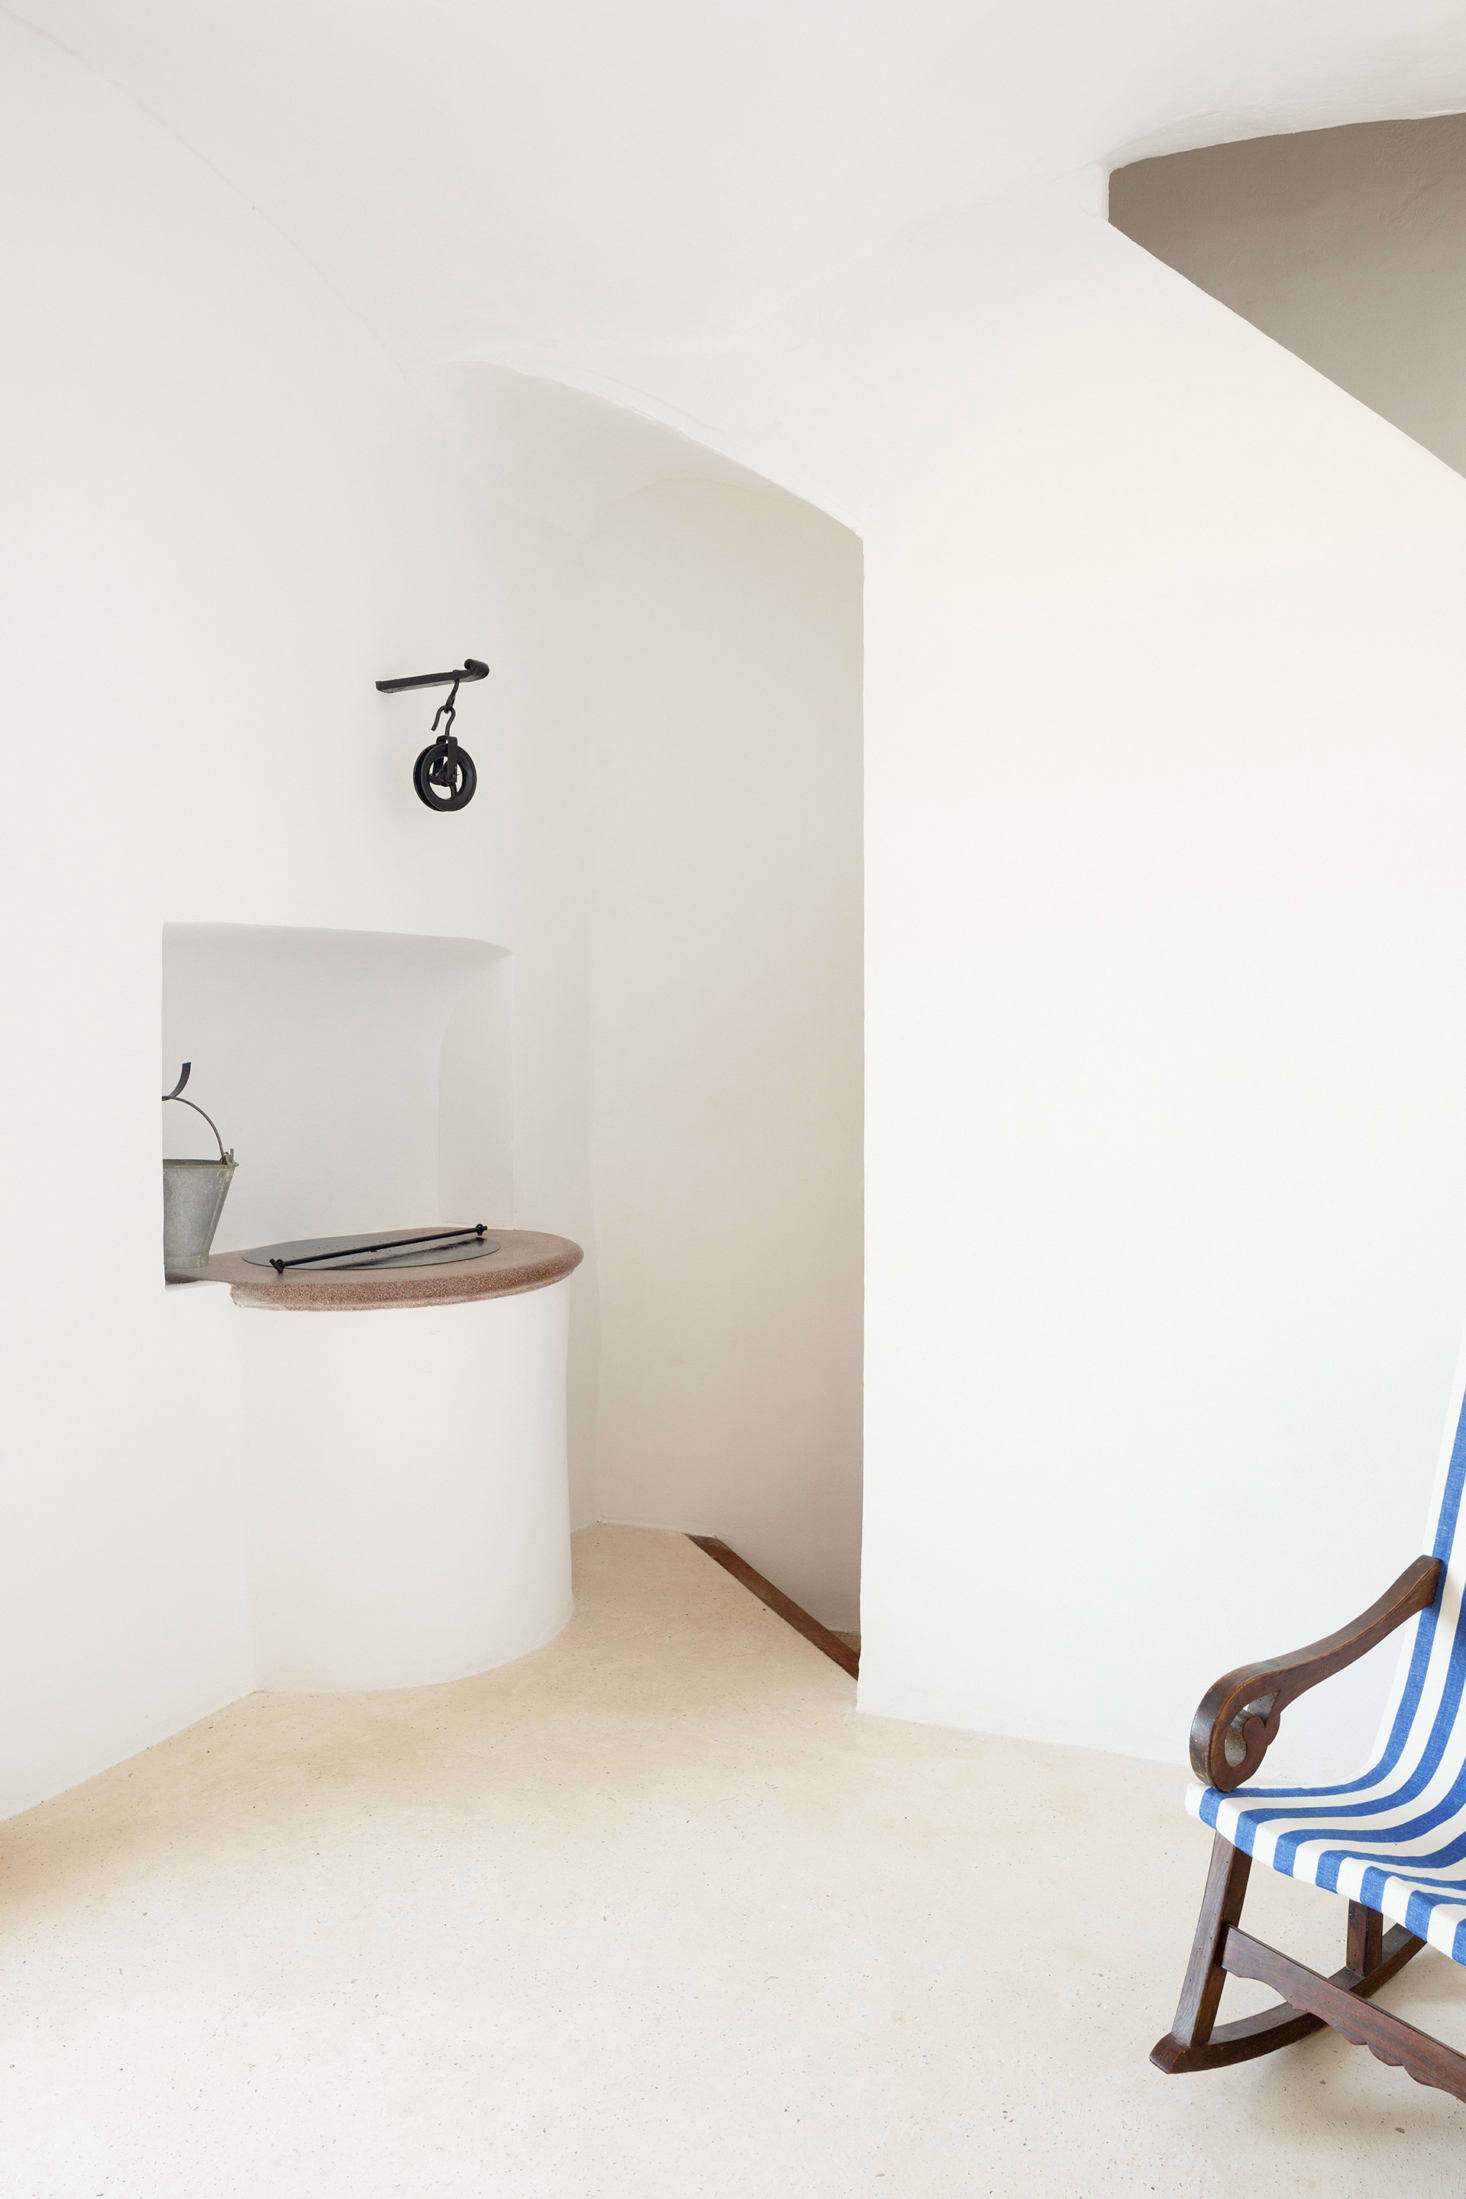 Behind the well, a stairway leads downstairs, to the bath.